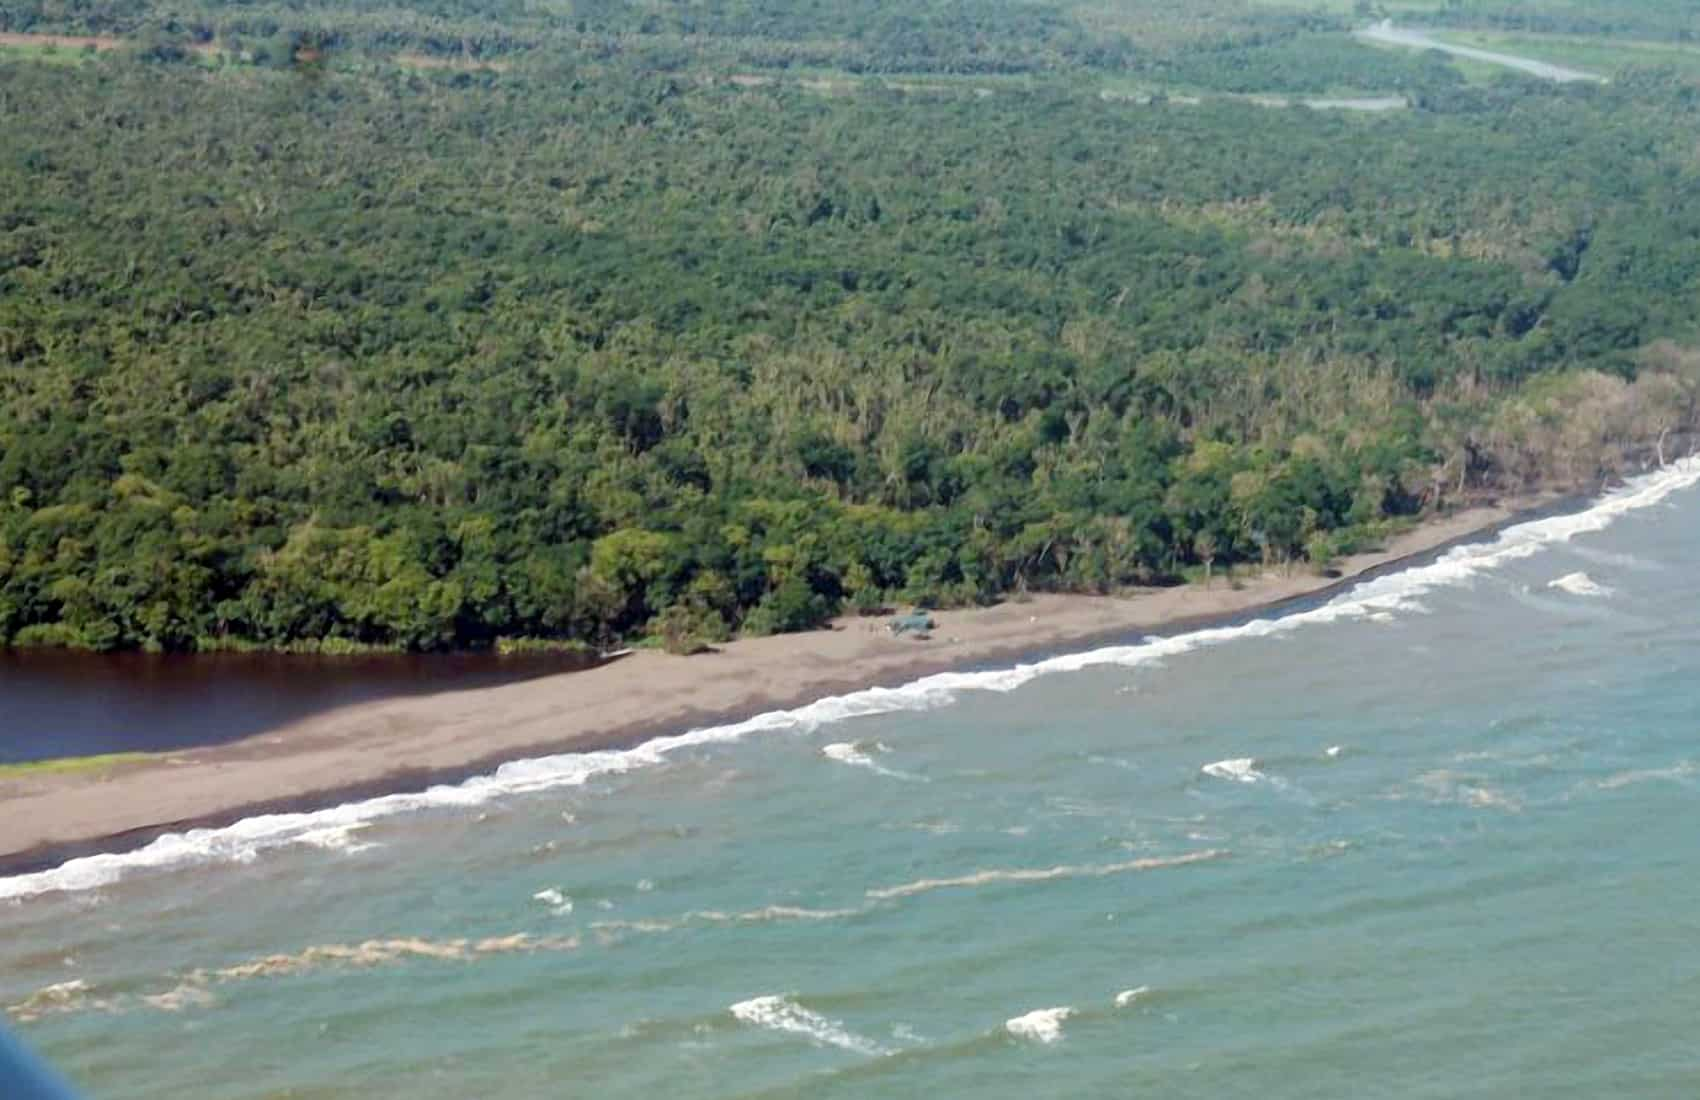 Top UN court orders Nicaragua to compensate Costa Rica for environmental damage